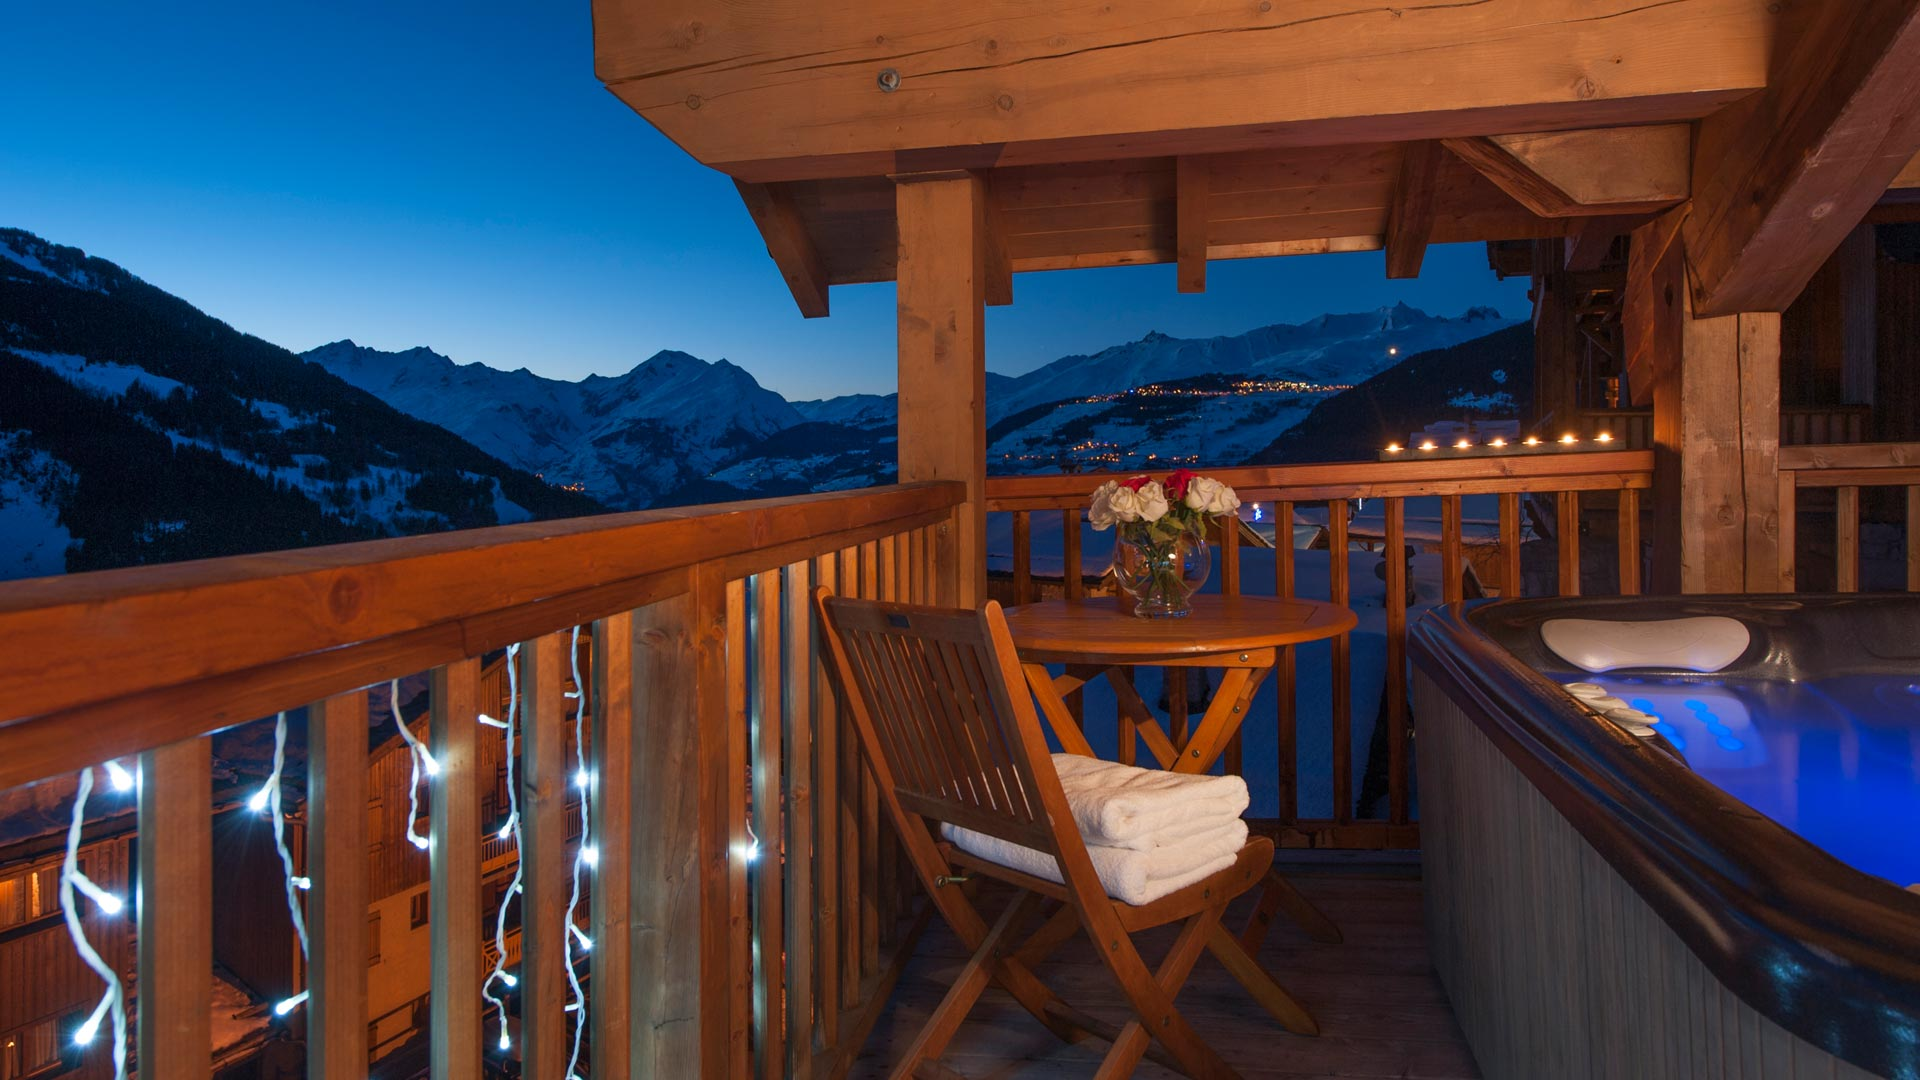 Balcony Hot Tub in The South Face Chalet in Ste Foy